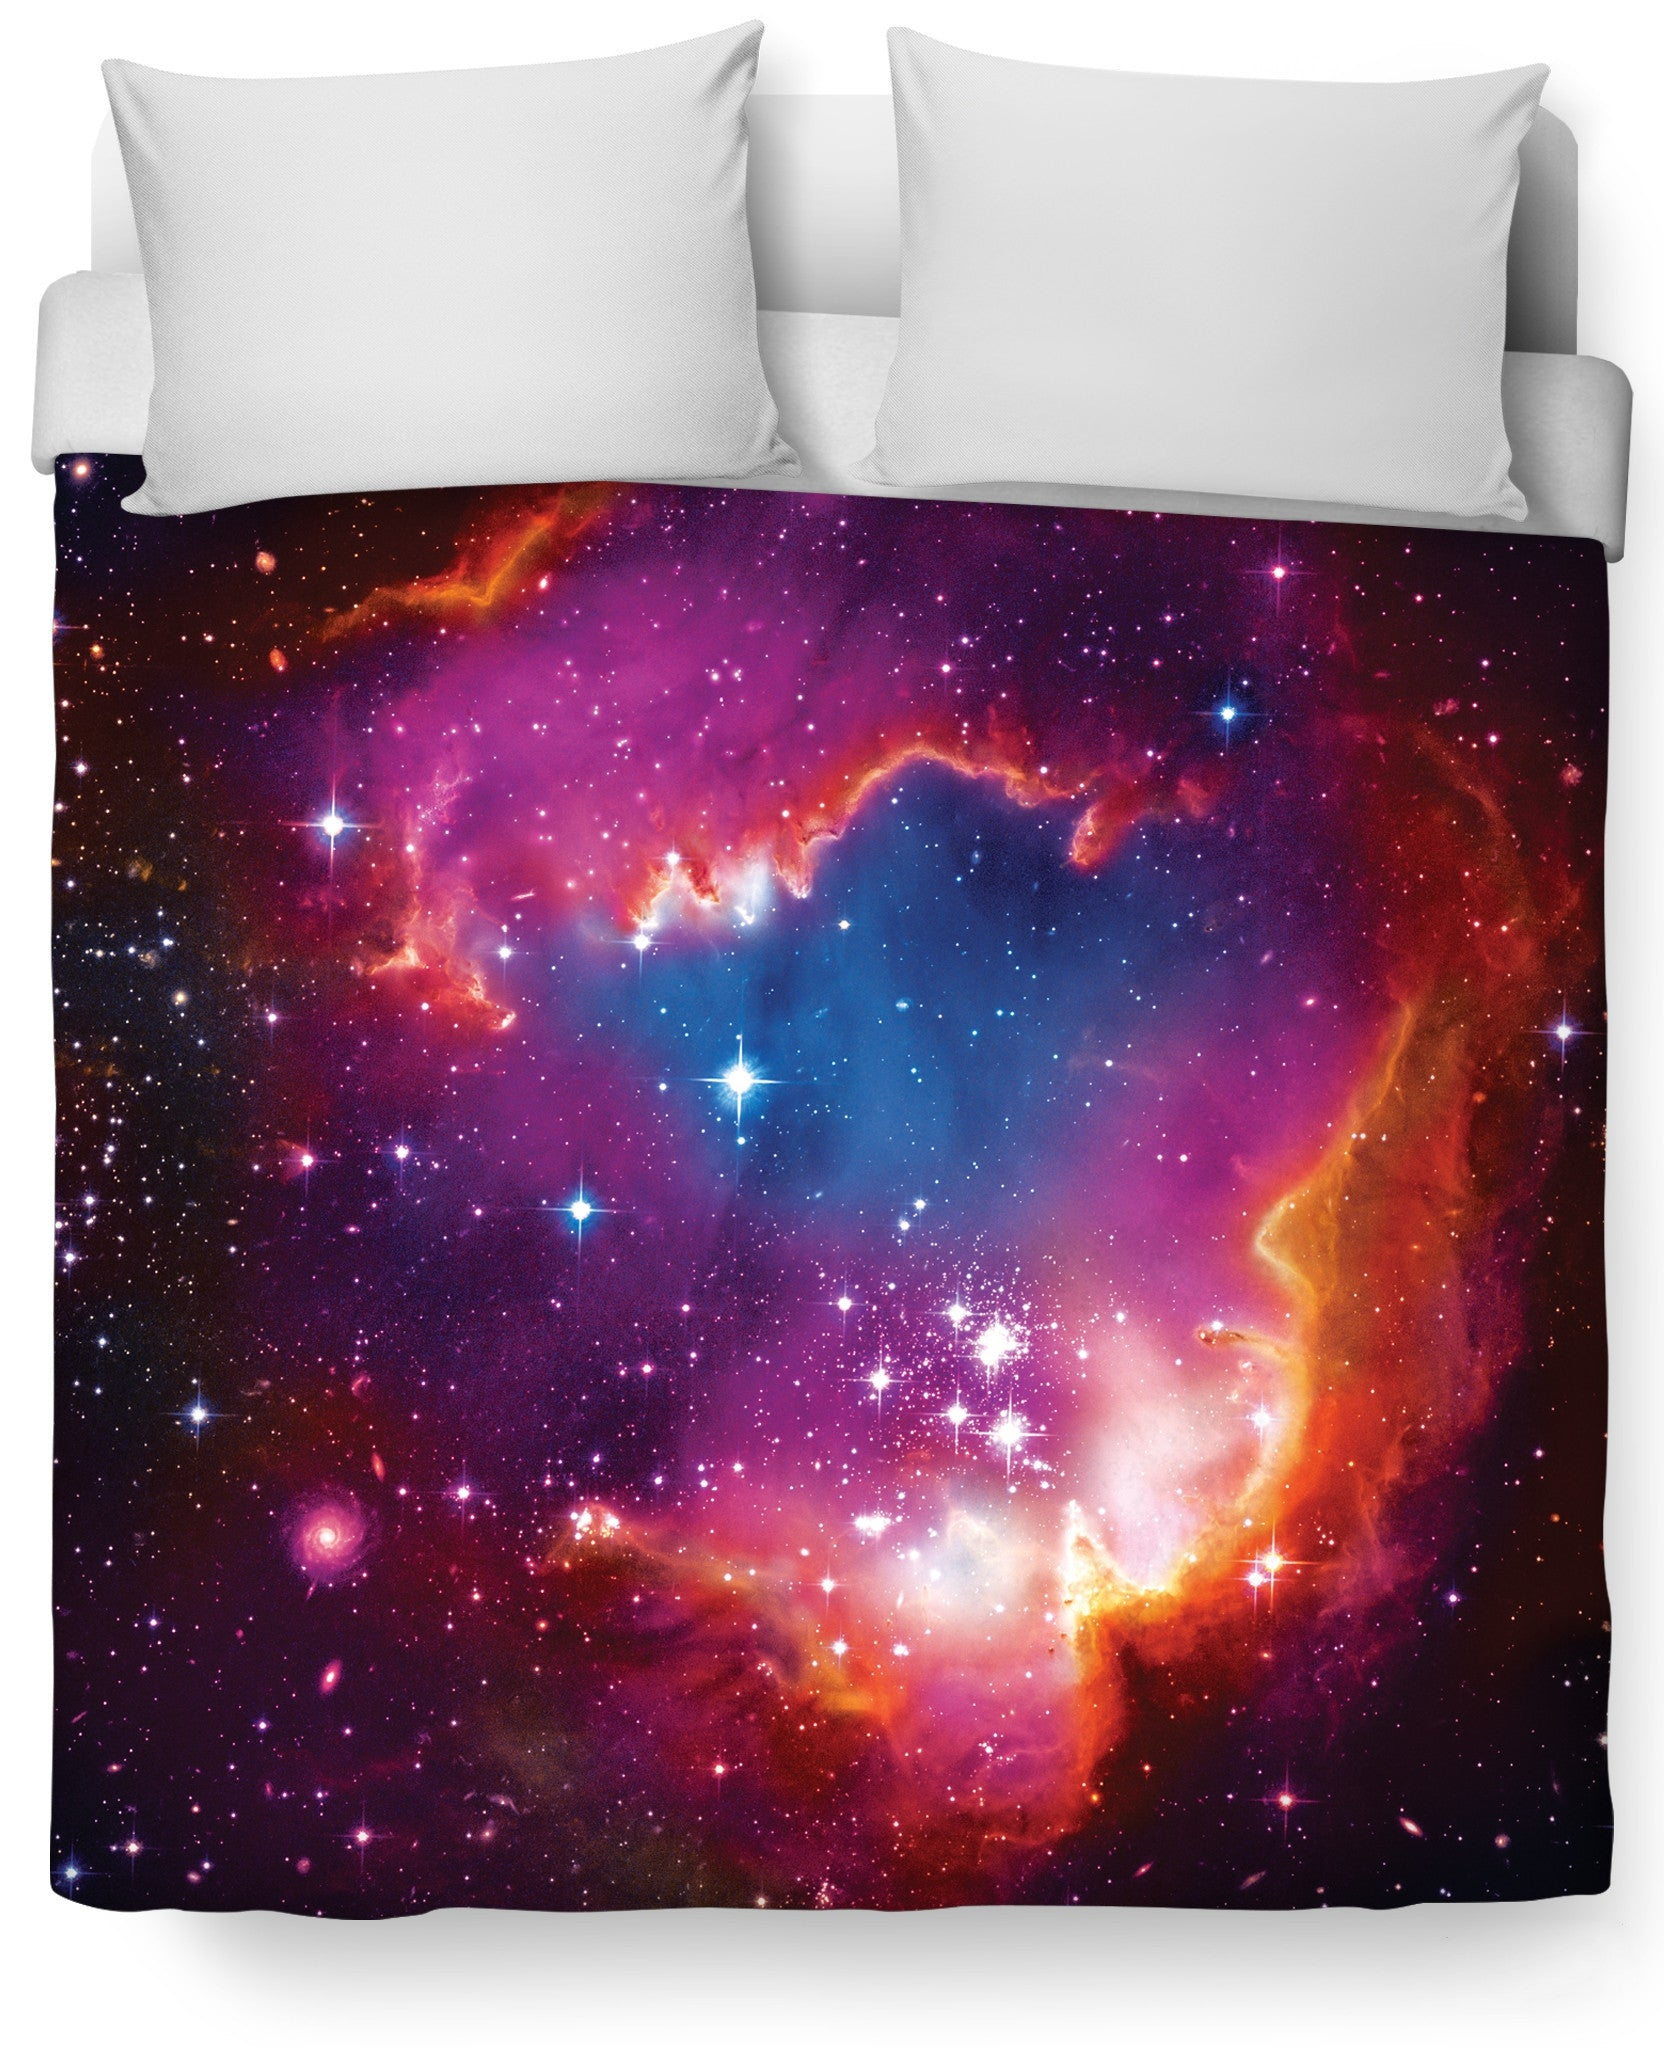 Cosmic Forces Duvet Cover